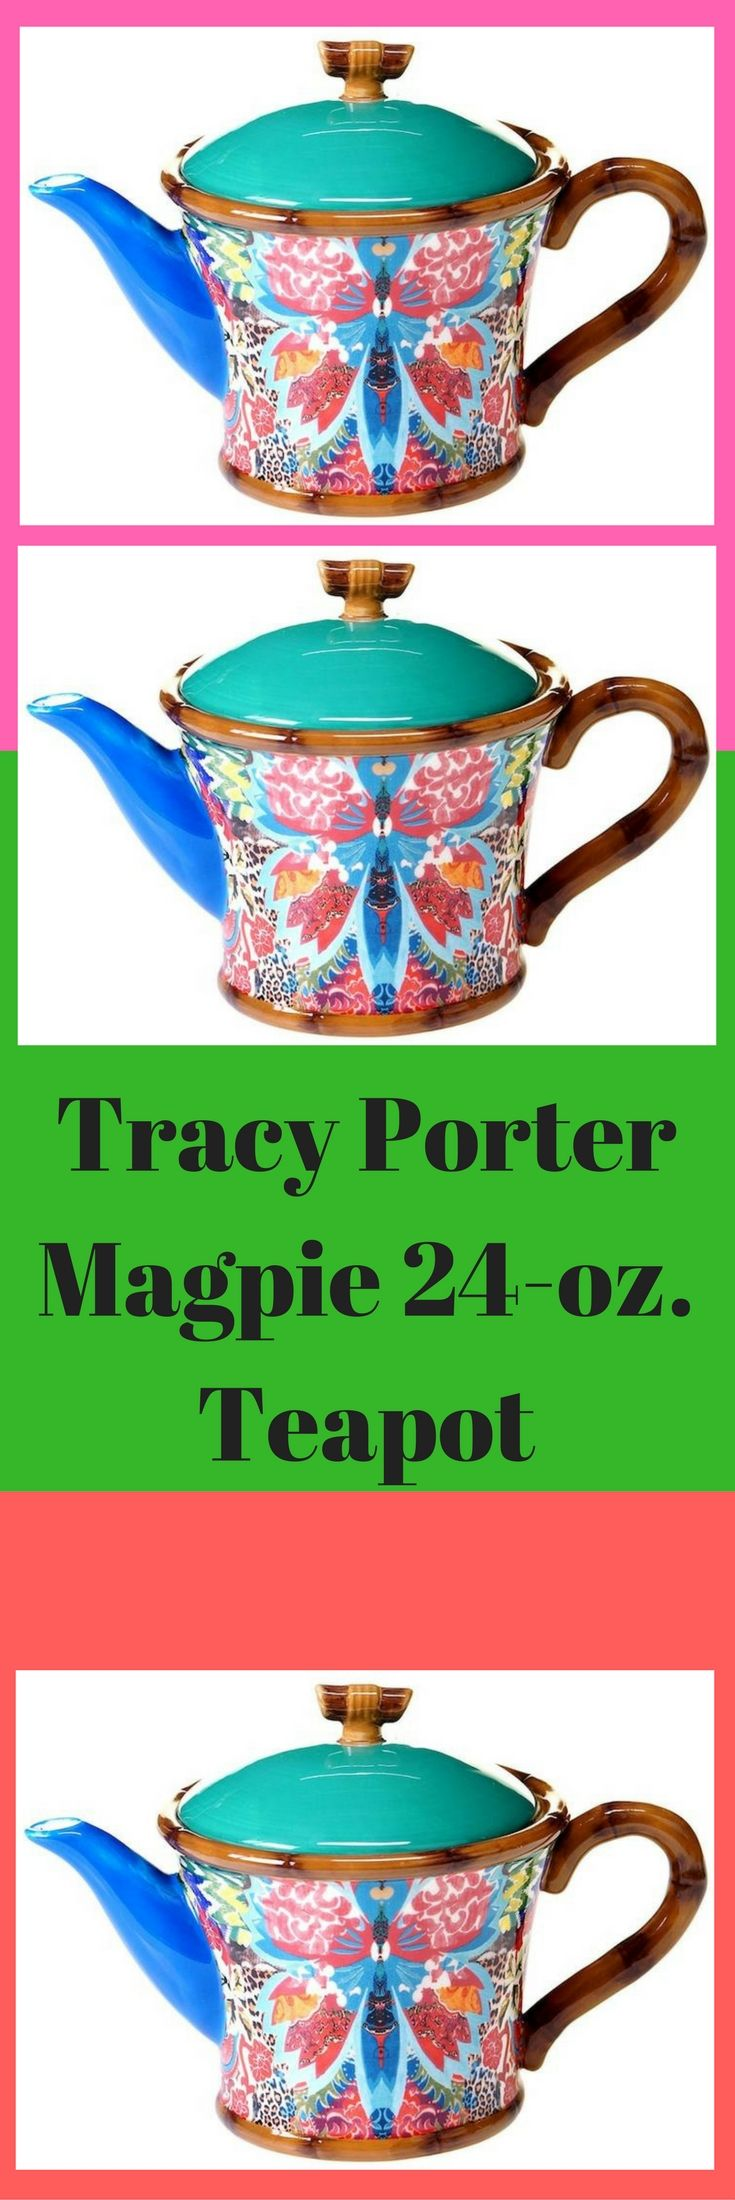 """Liven up your serveware collection with this bright and eclectic Tracy Porter serving set. Vibrant floral pattern Bamboo-inspired edges & handle Top knob makes it easy to lift lid Ceramic Dishwasher & microwave safe 6""""H x 9.25""""W x 5.5""""D 24-oz. capacity Model no. 44119 Size: Tea Pot.#ad #teapot"""